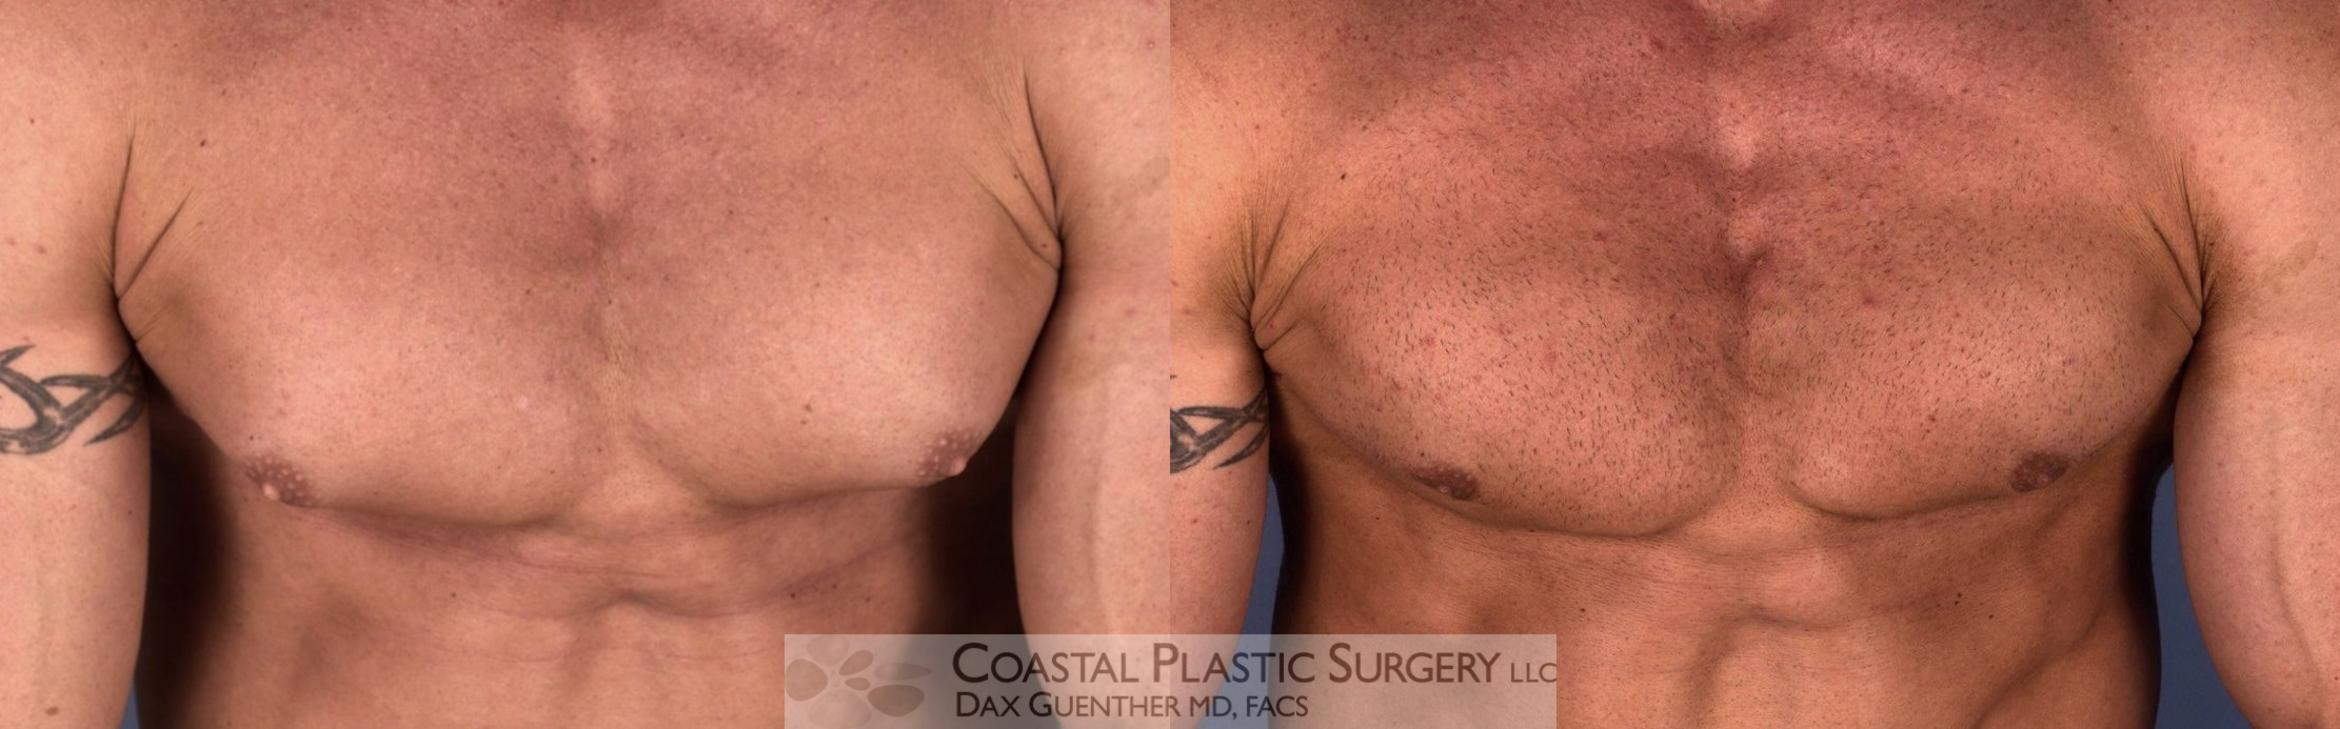 Male Breast Reduction (Gynecomastia) Before & After Photo | Hingham, MA | Dax Guenther, MD: Coastal Plastic Surgery